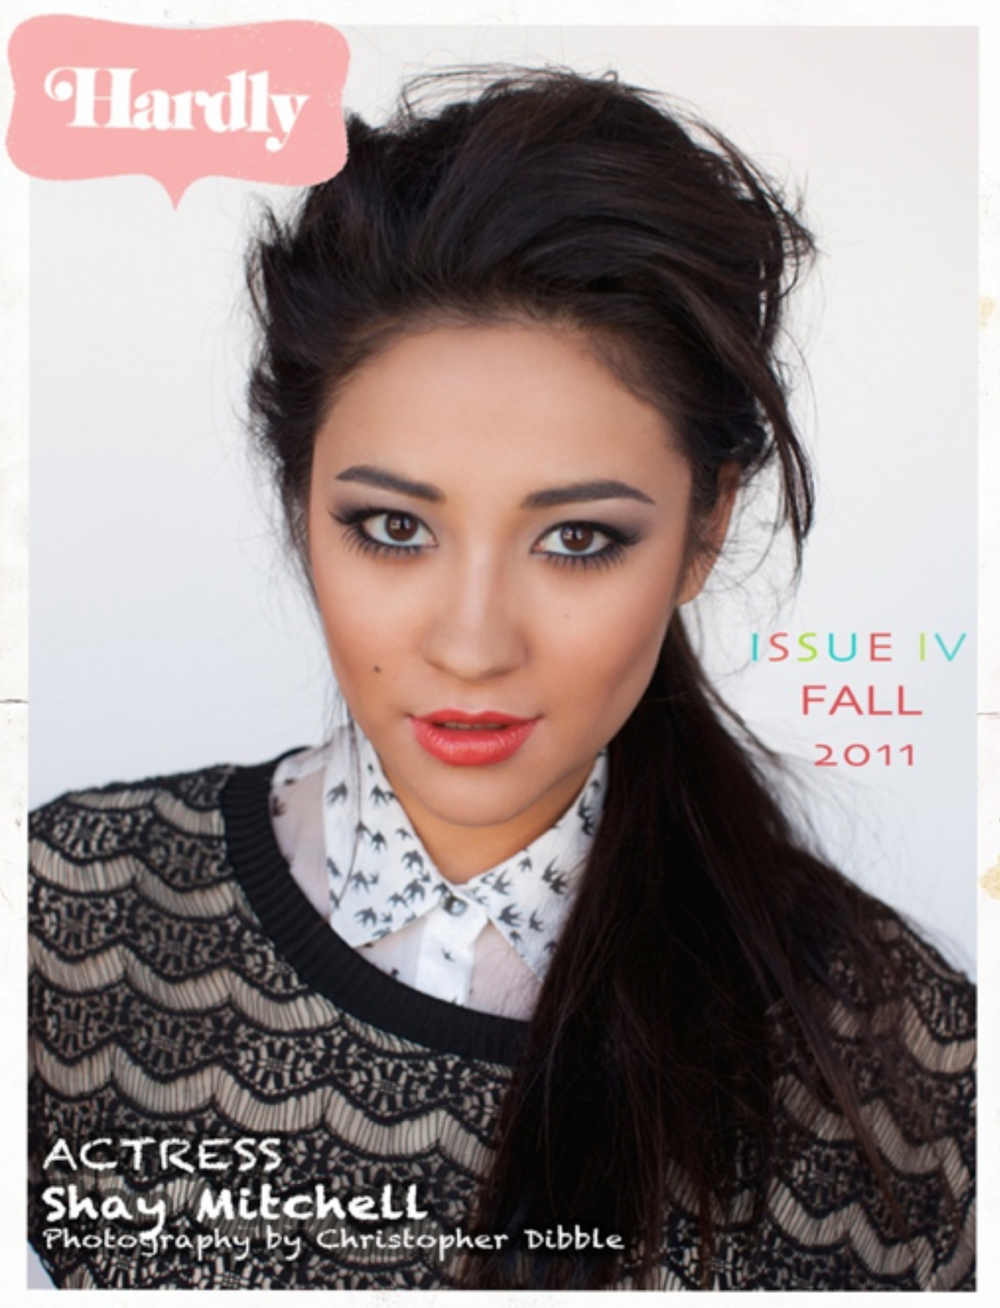 Hardly Magazine - Shay Mitchell